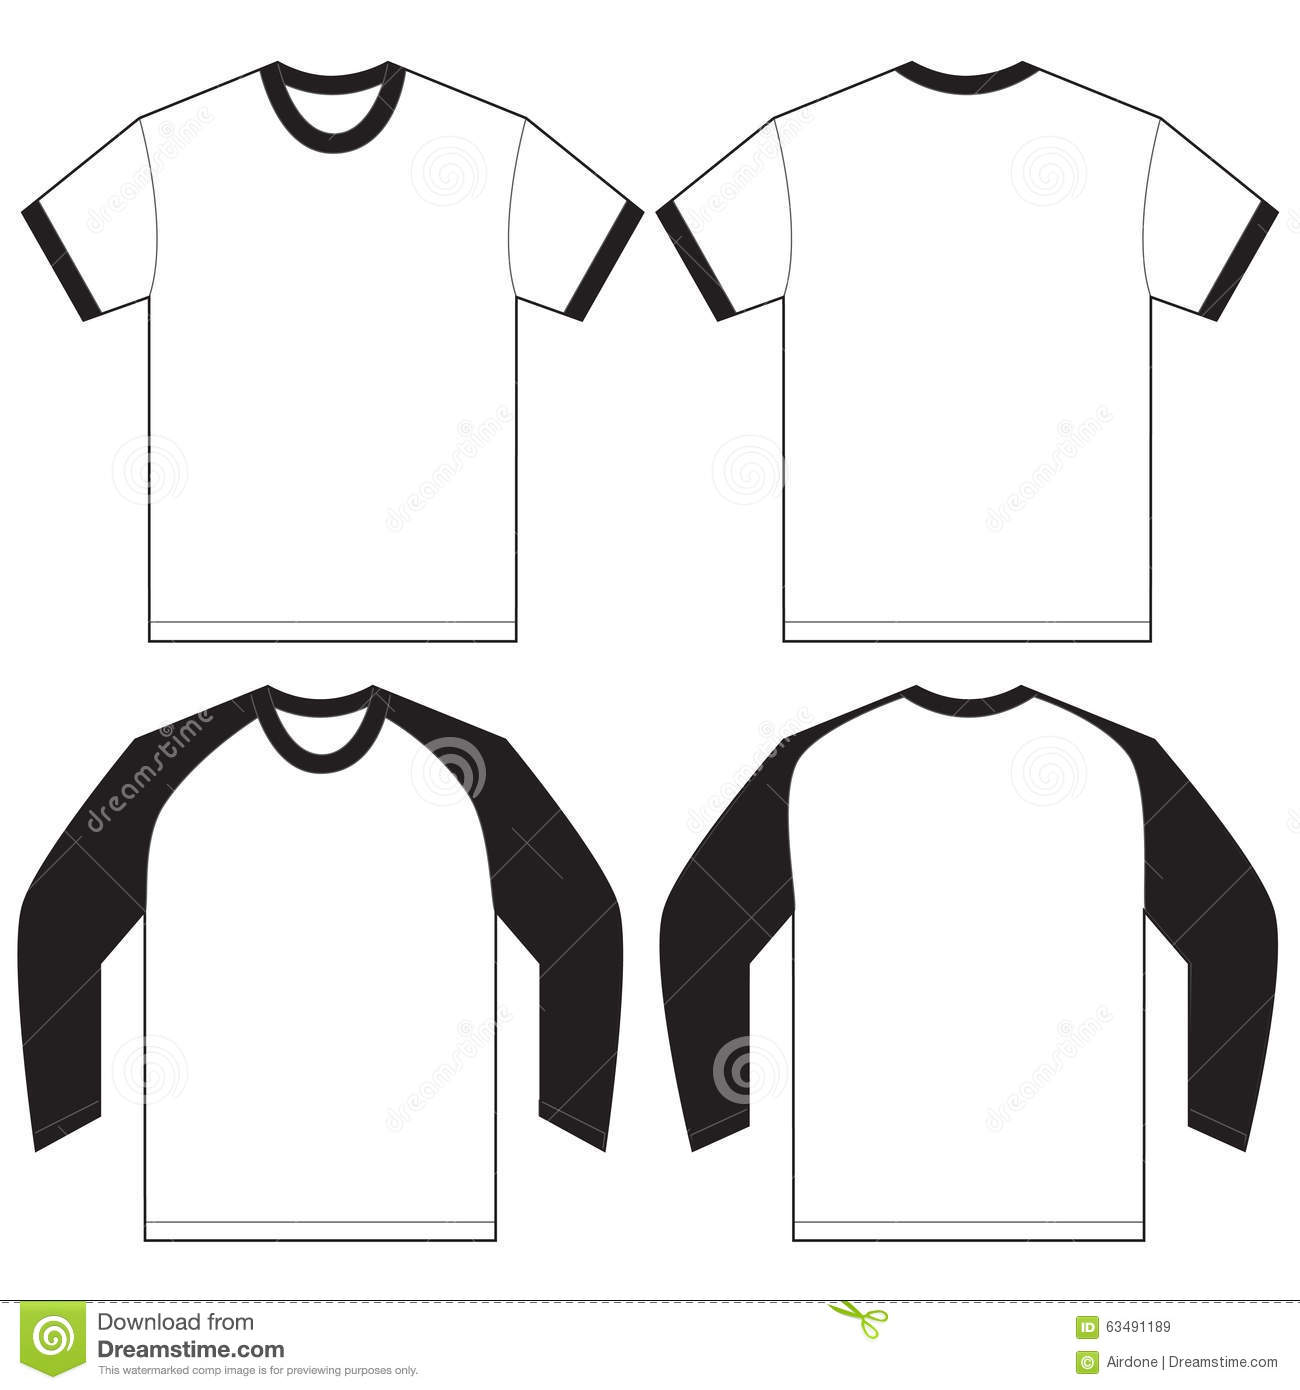 Black White Ringer T-Shirt Design Template Stock Vector - Image ...